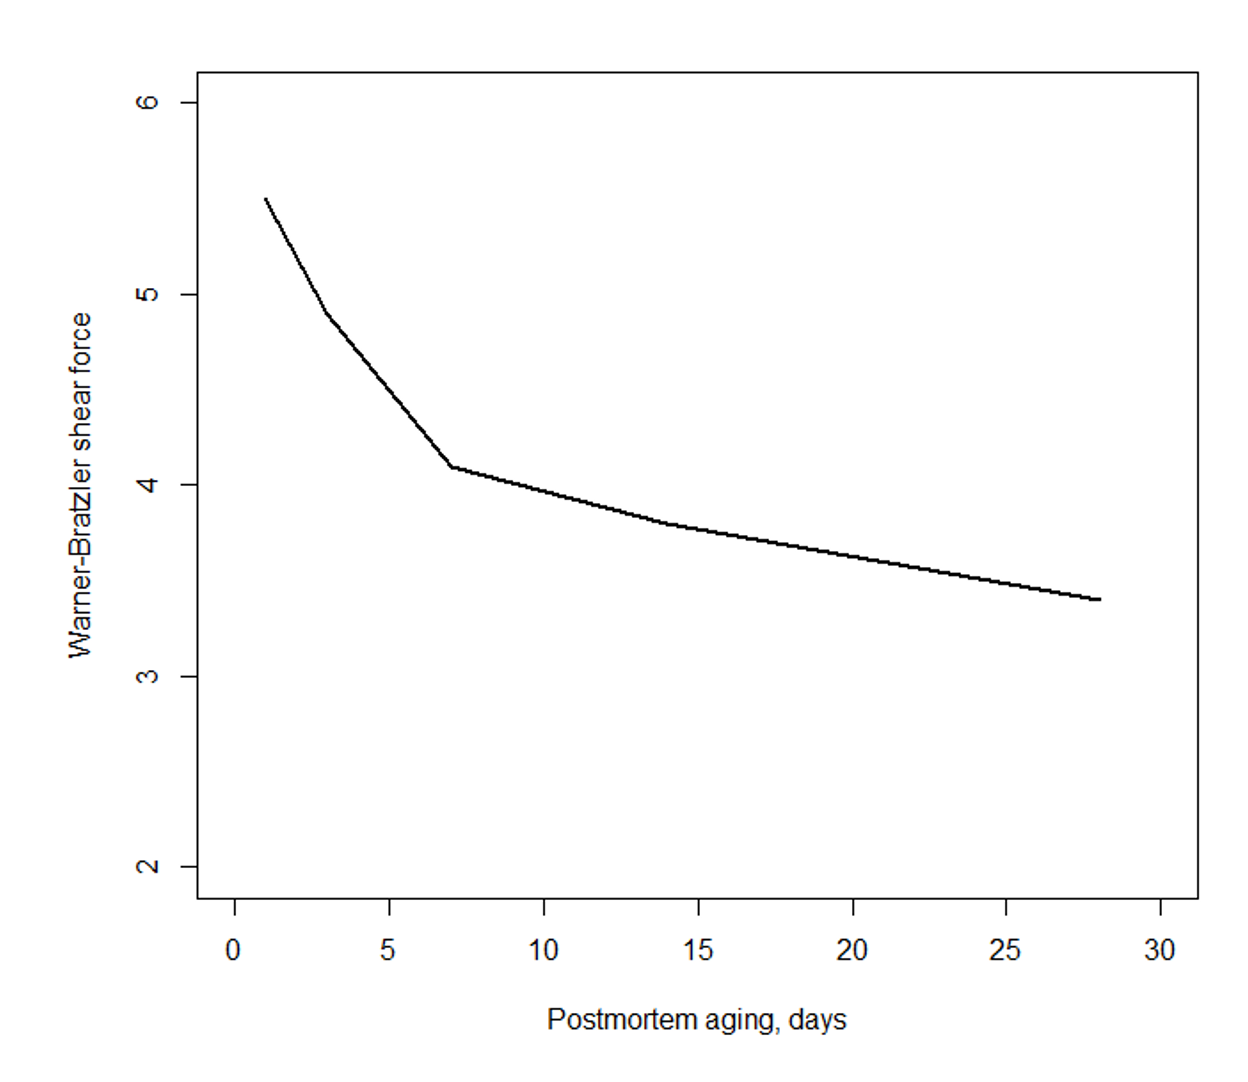 Line graph showing the effect of aging on forage finished beef tenderness